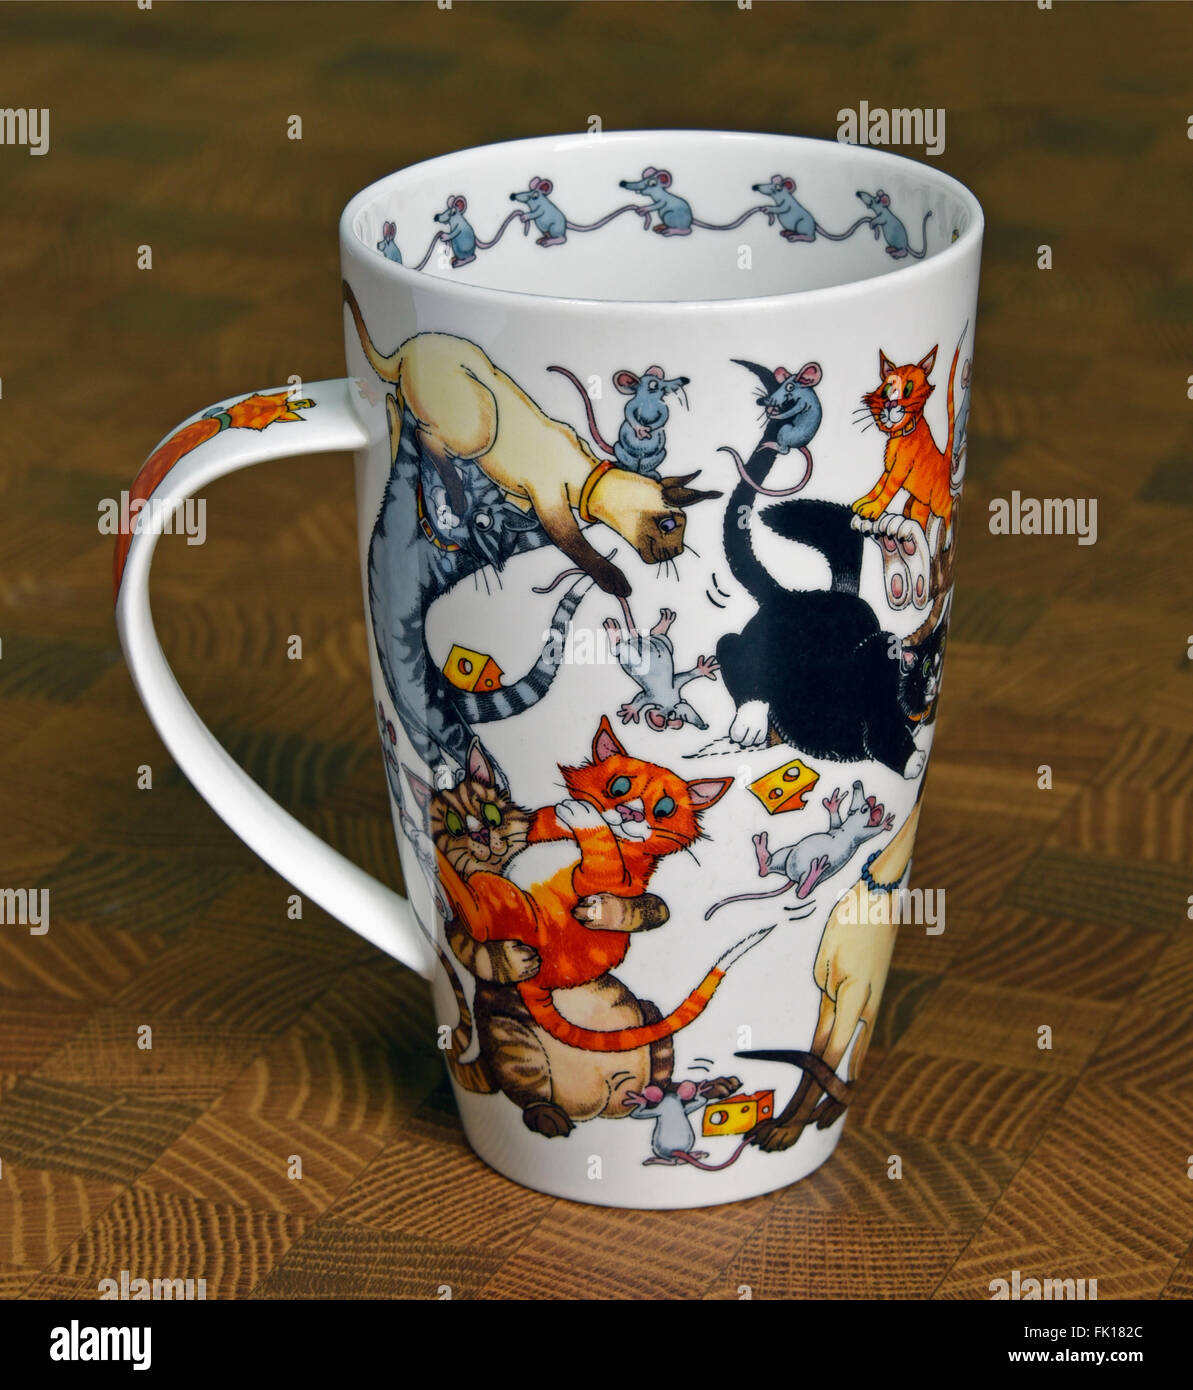 "Ceramic Mug. ""Pussy Galore"", design by Cherry Denman. Dunoon Fine Bone China, England. Stock Photo"